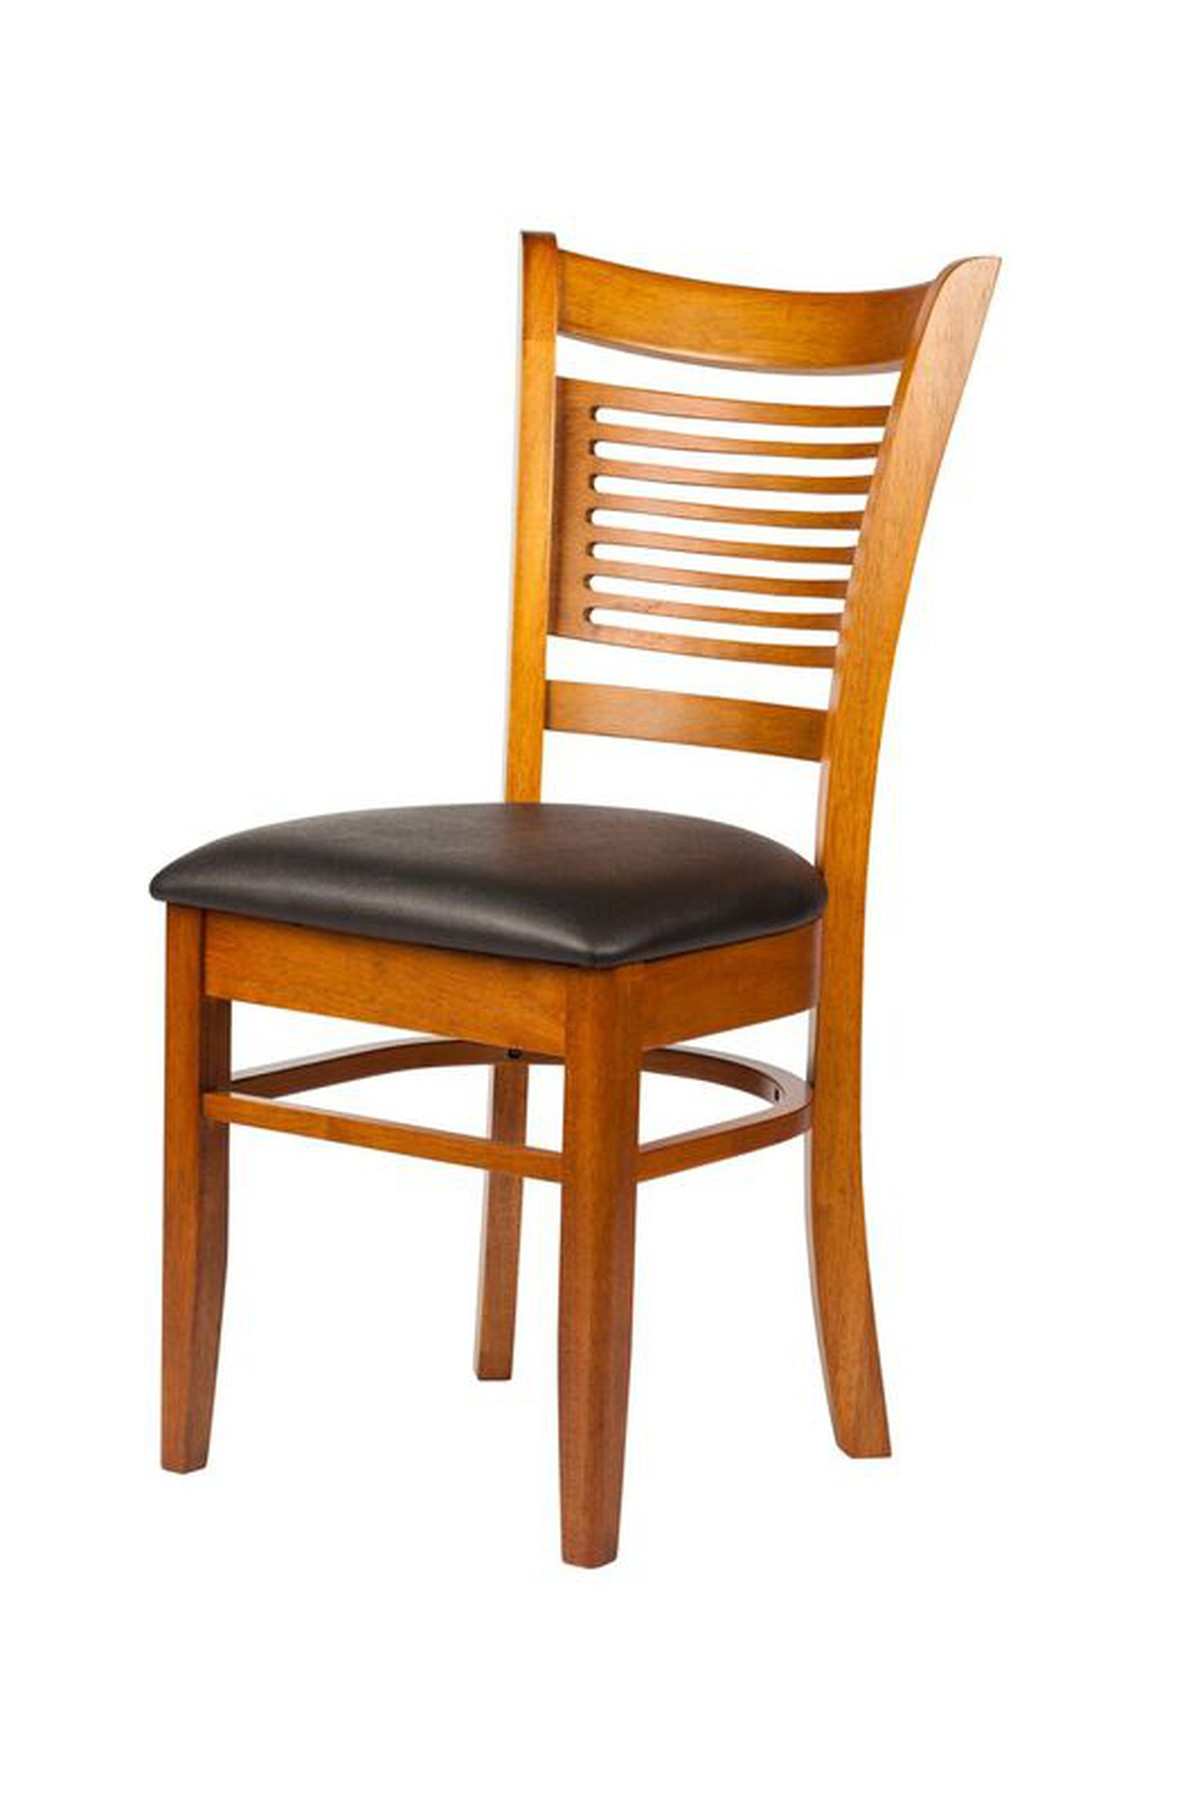 Restaurant Chairs For Sale Secondhand Chairs And Tables Restaurant Chairs New